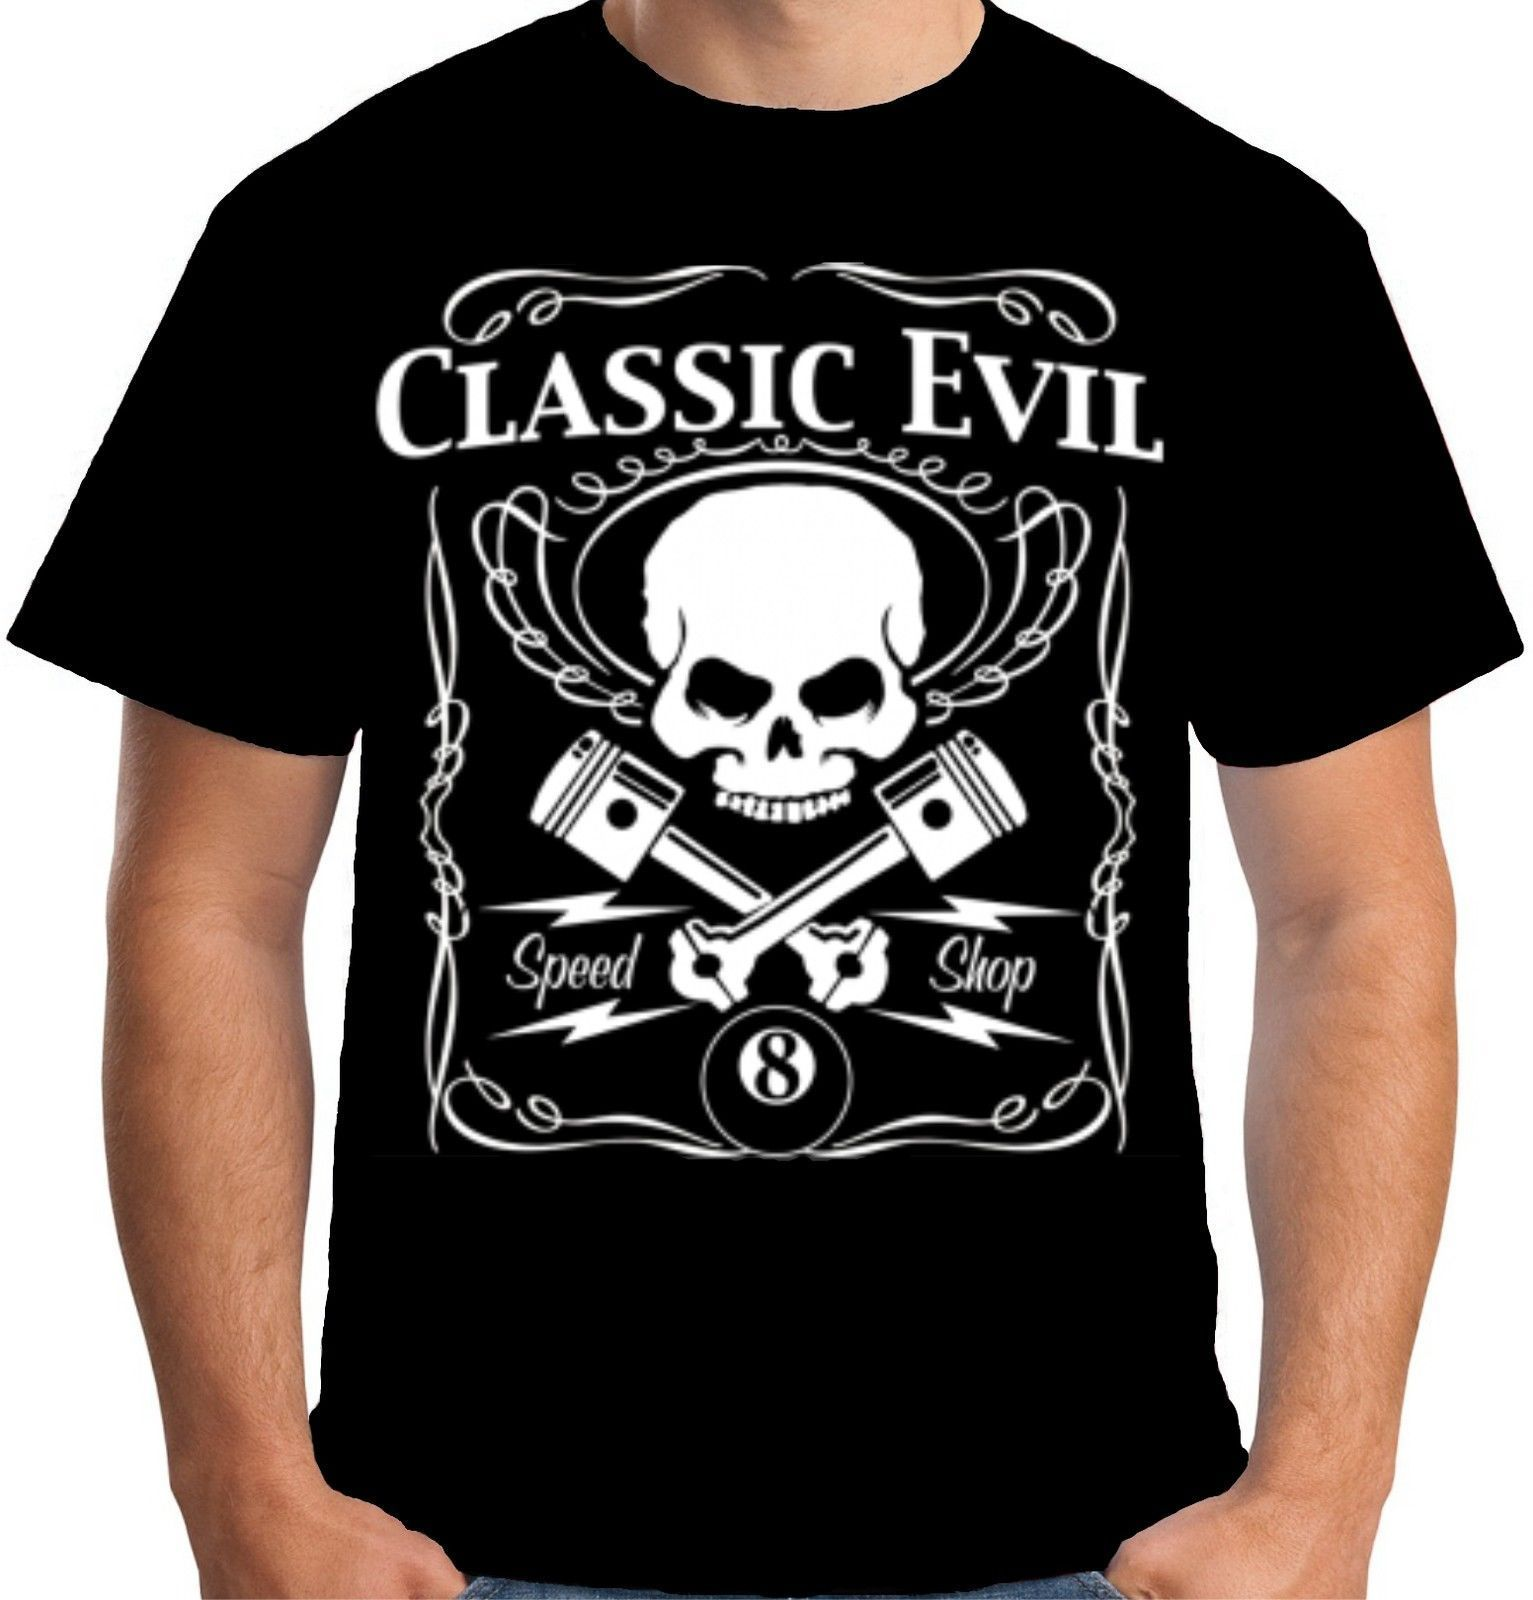 tee-shirt rockabilly Classic evil speed shop Pistons retro hot rod 2018 Summer T Shirt Summer Fashion Men T Shirt